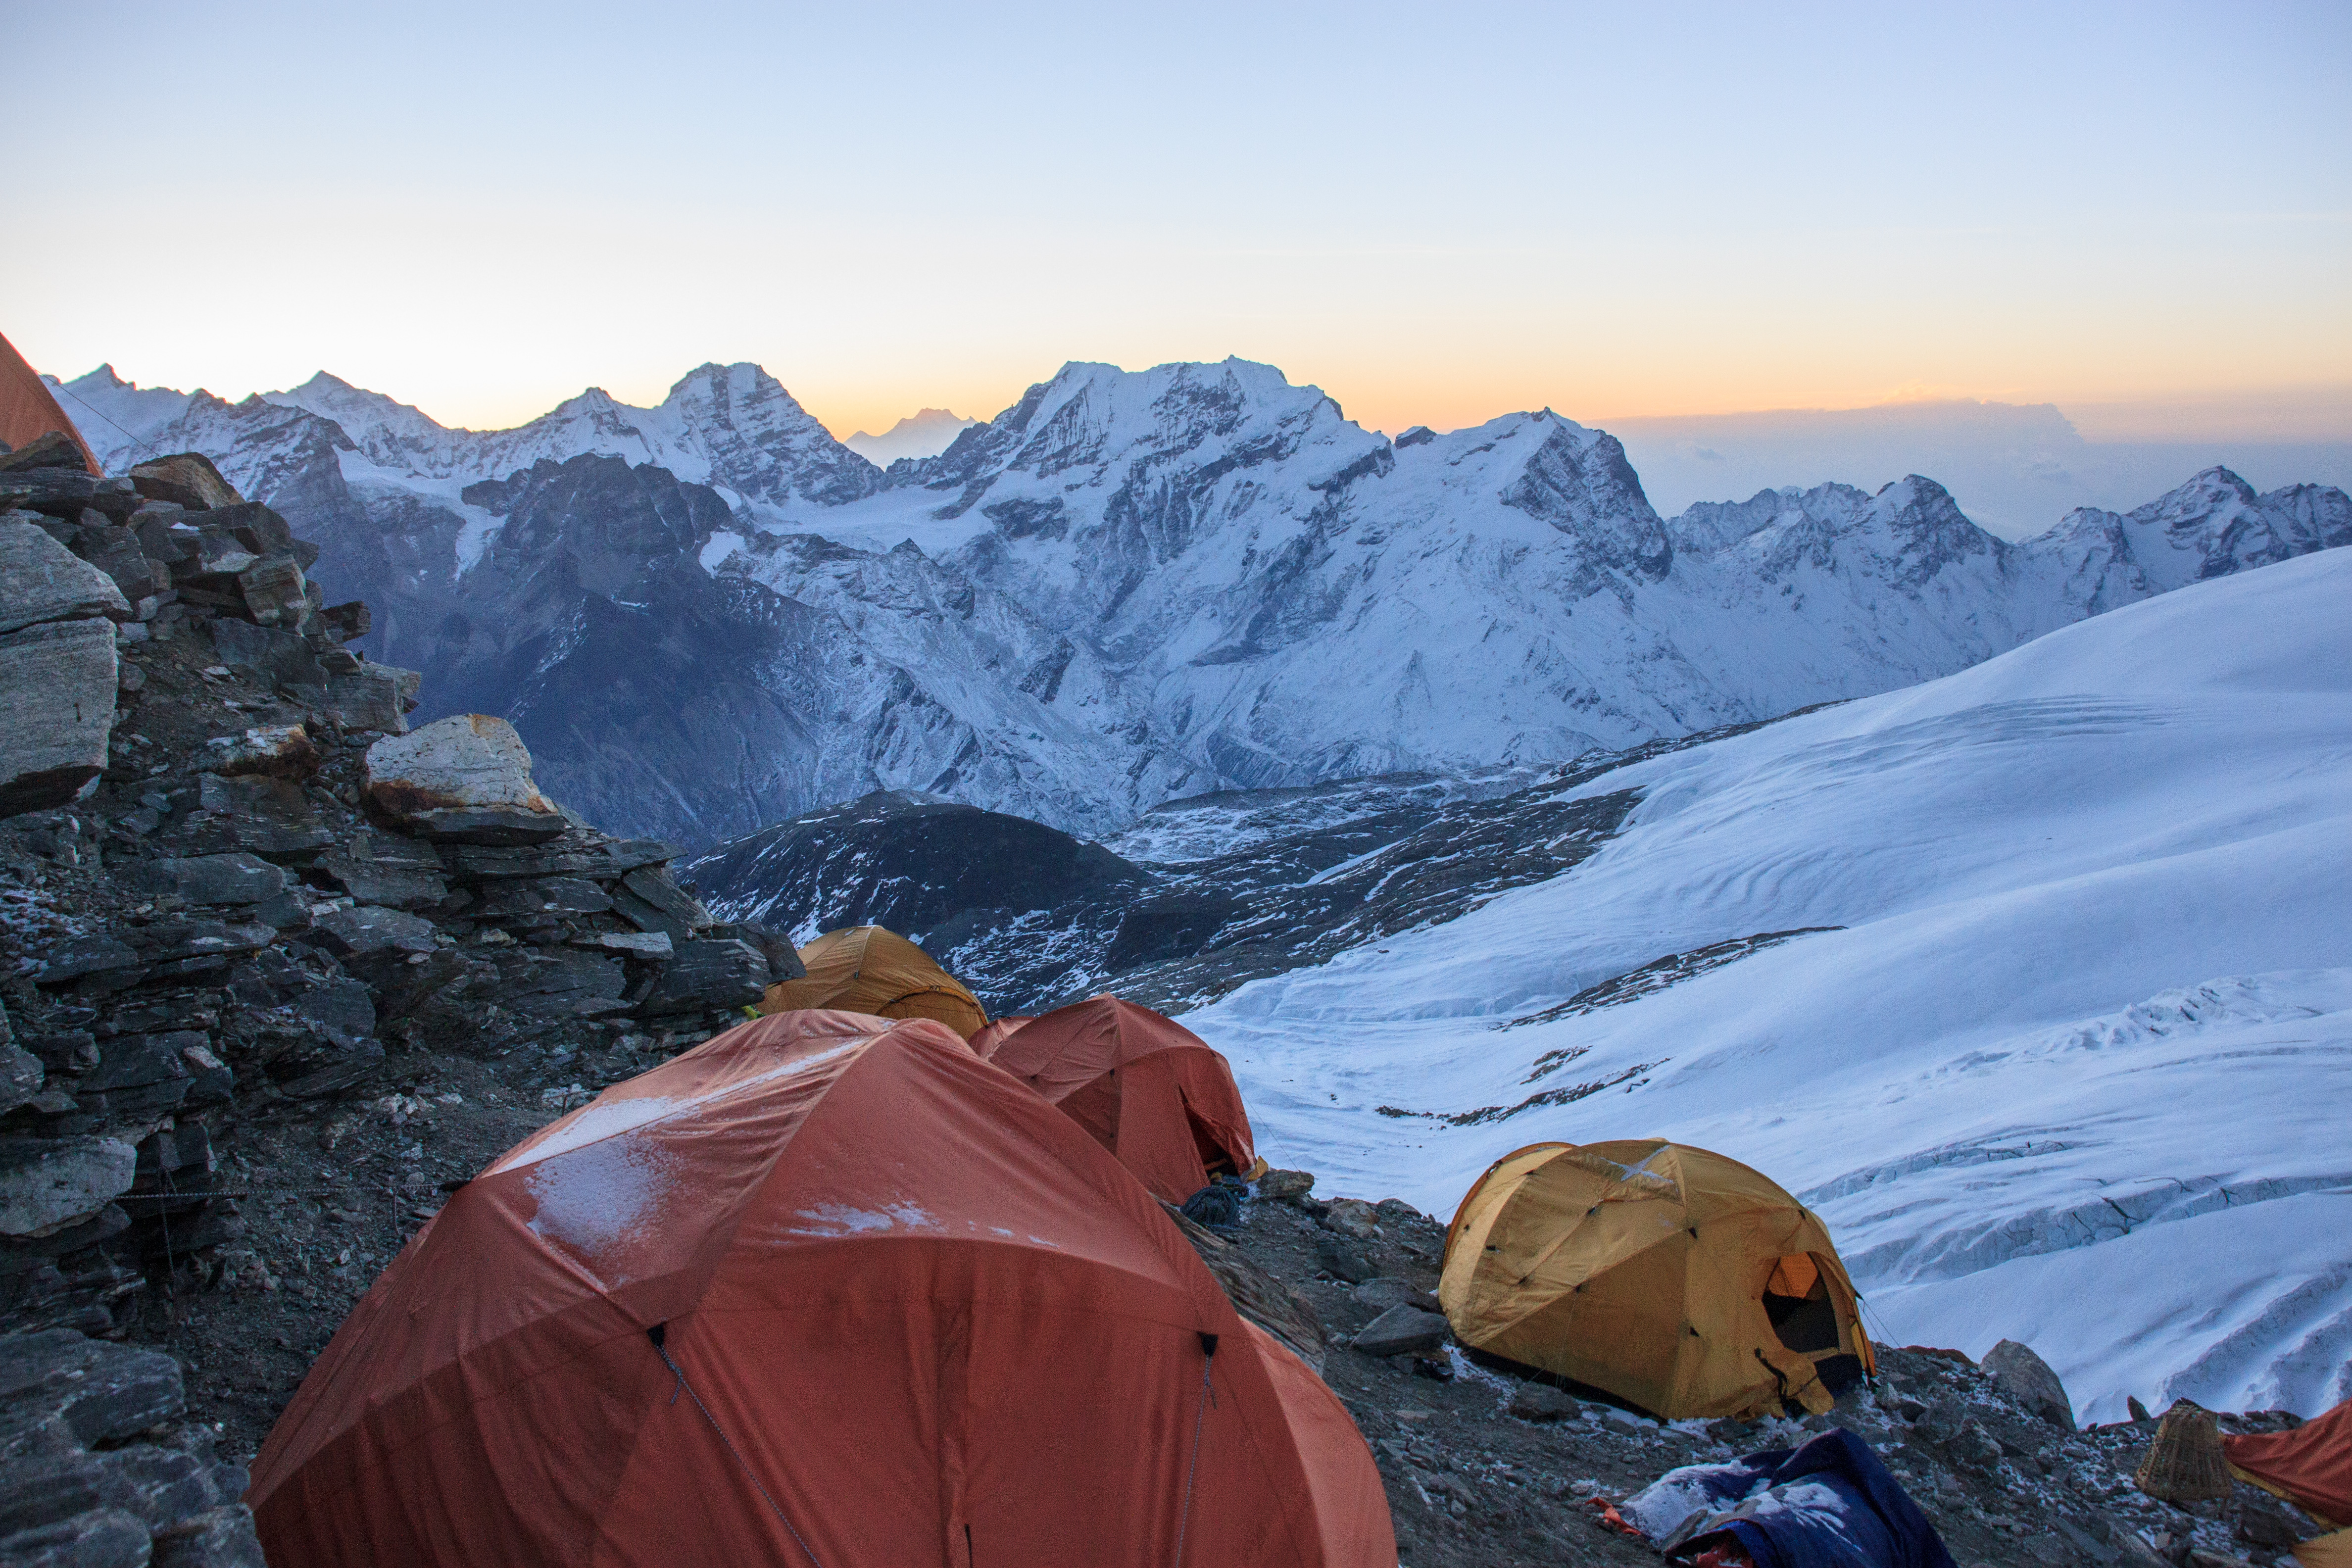 Peeking out of the tent at High Camp at sunrise